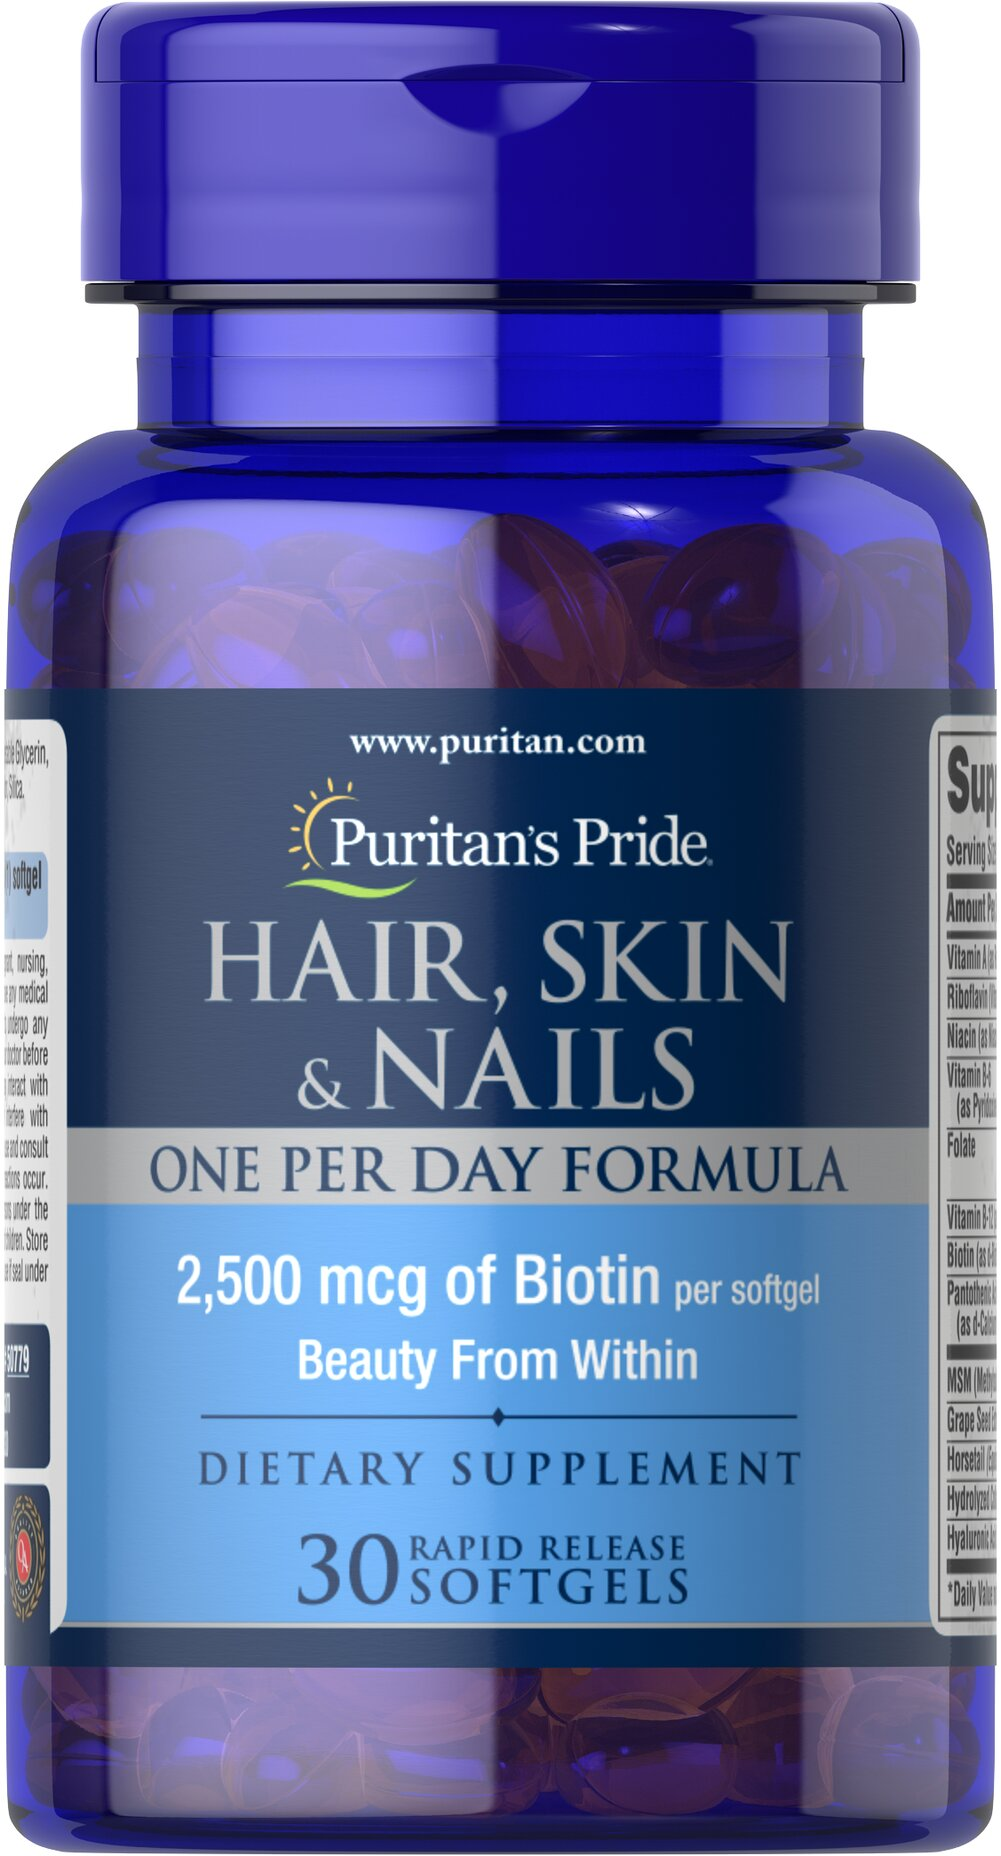 Hair, Skin & Nails One Per Day Formula Thumbnail Alternate Bottle View